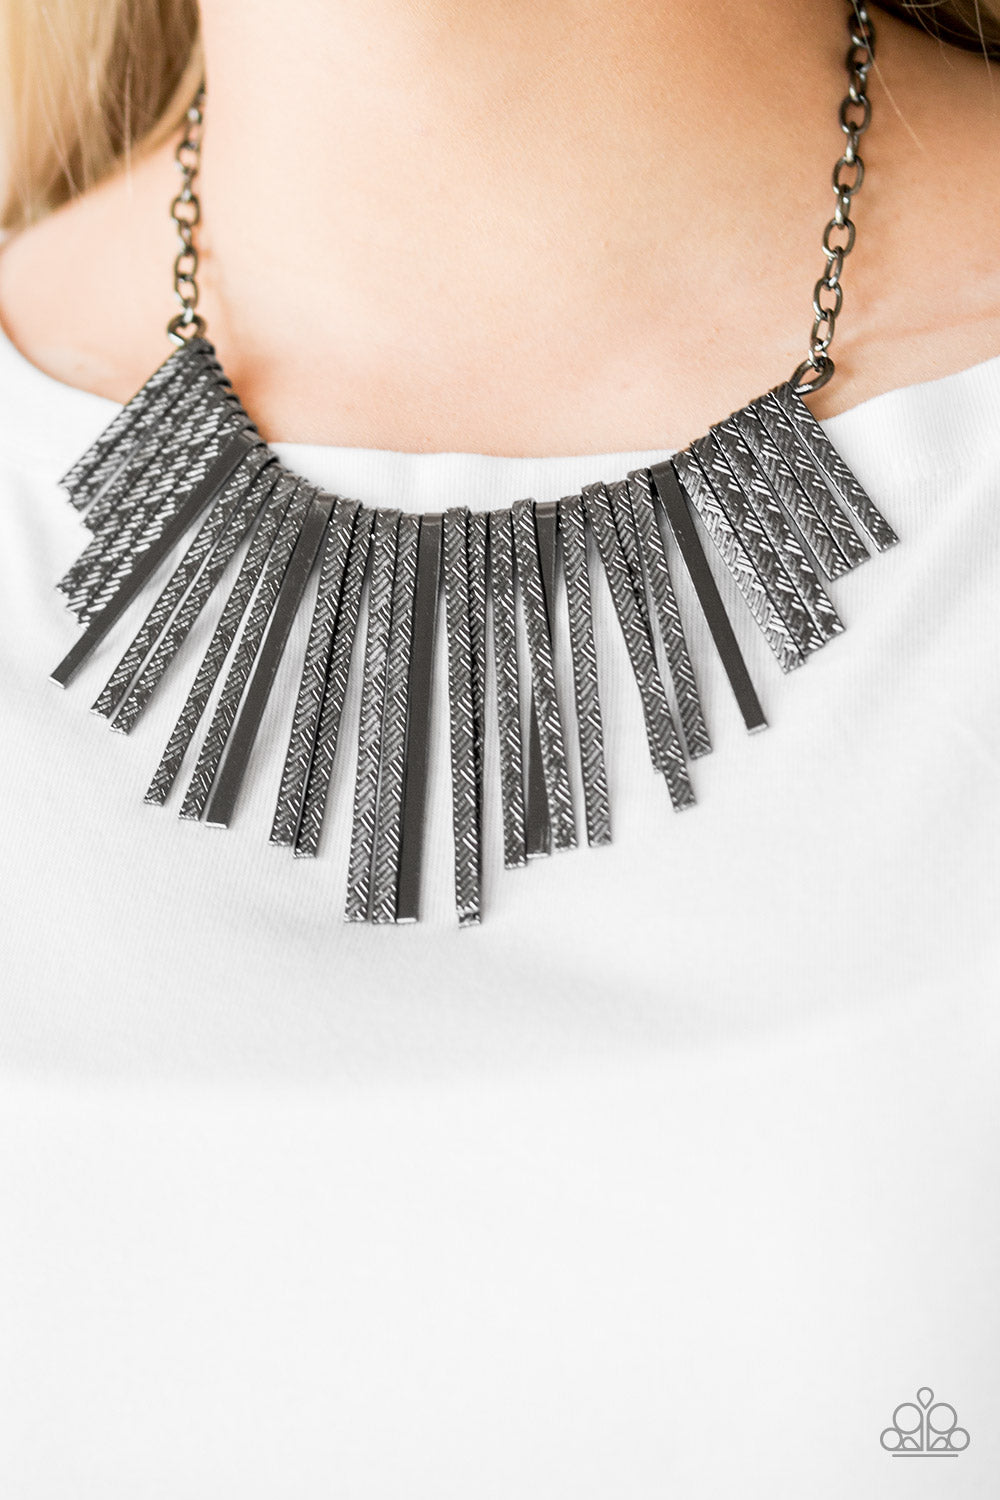 Paparazzi Accessories Welcome to the Pack - Black Necklaces